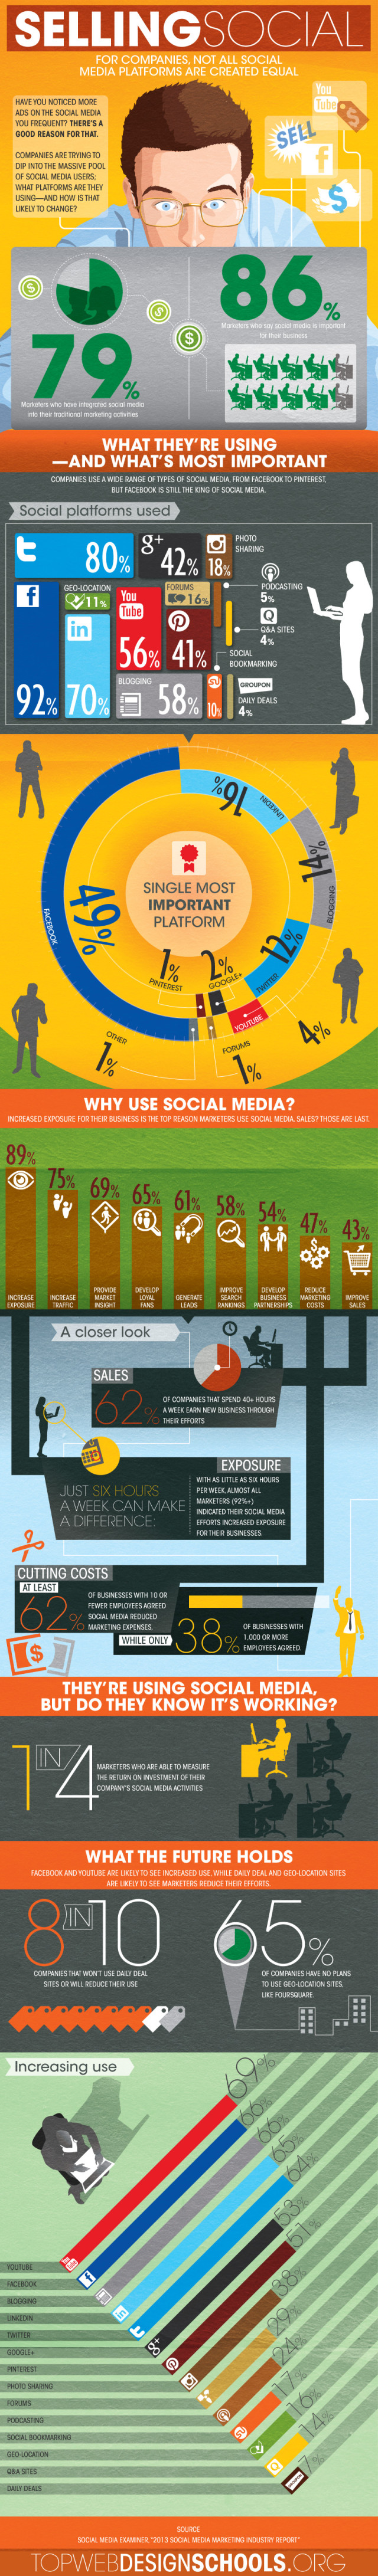 Selling-On-Social-Media-Infographic